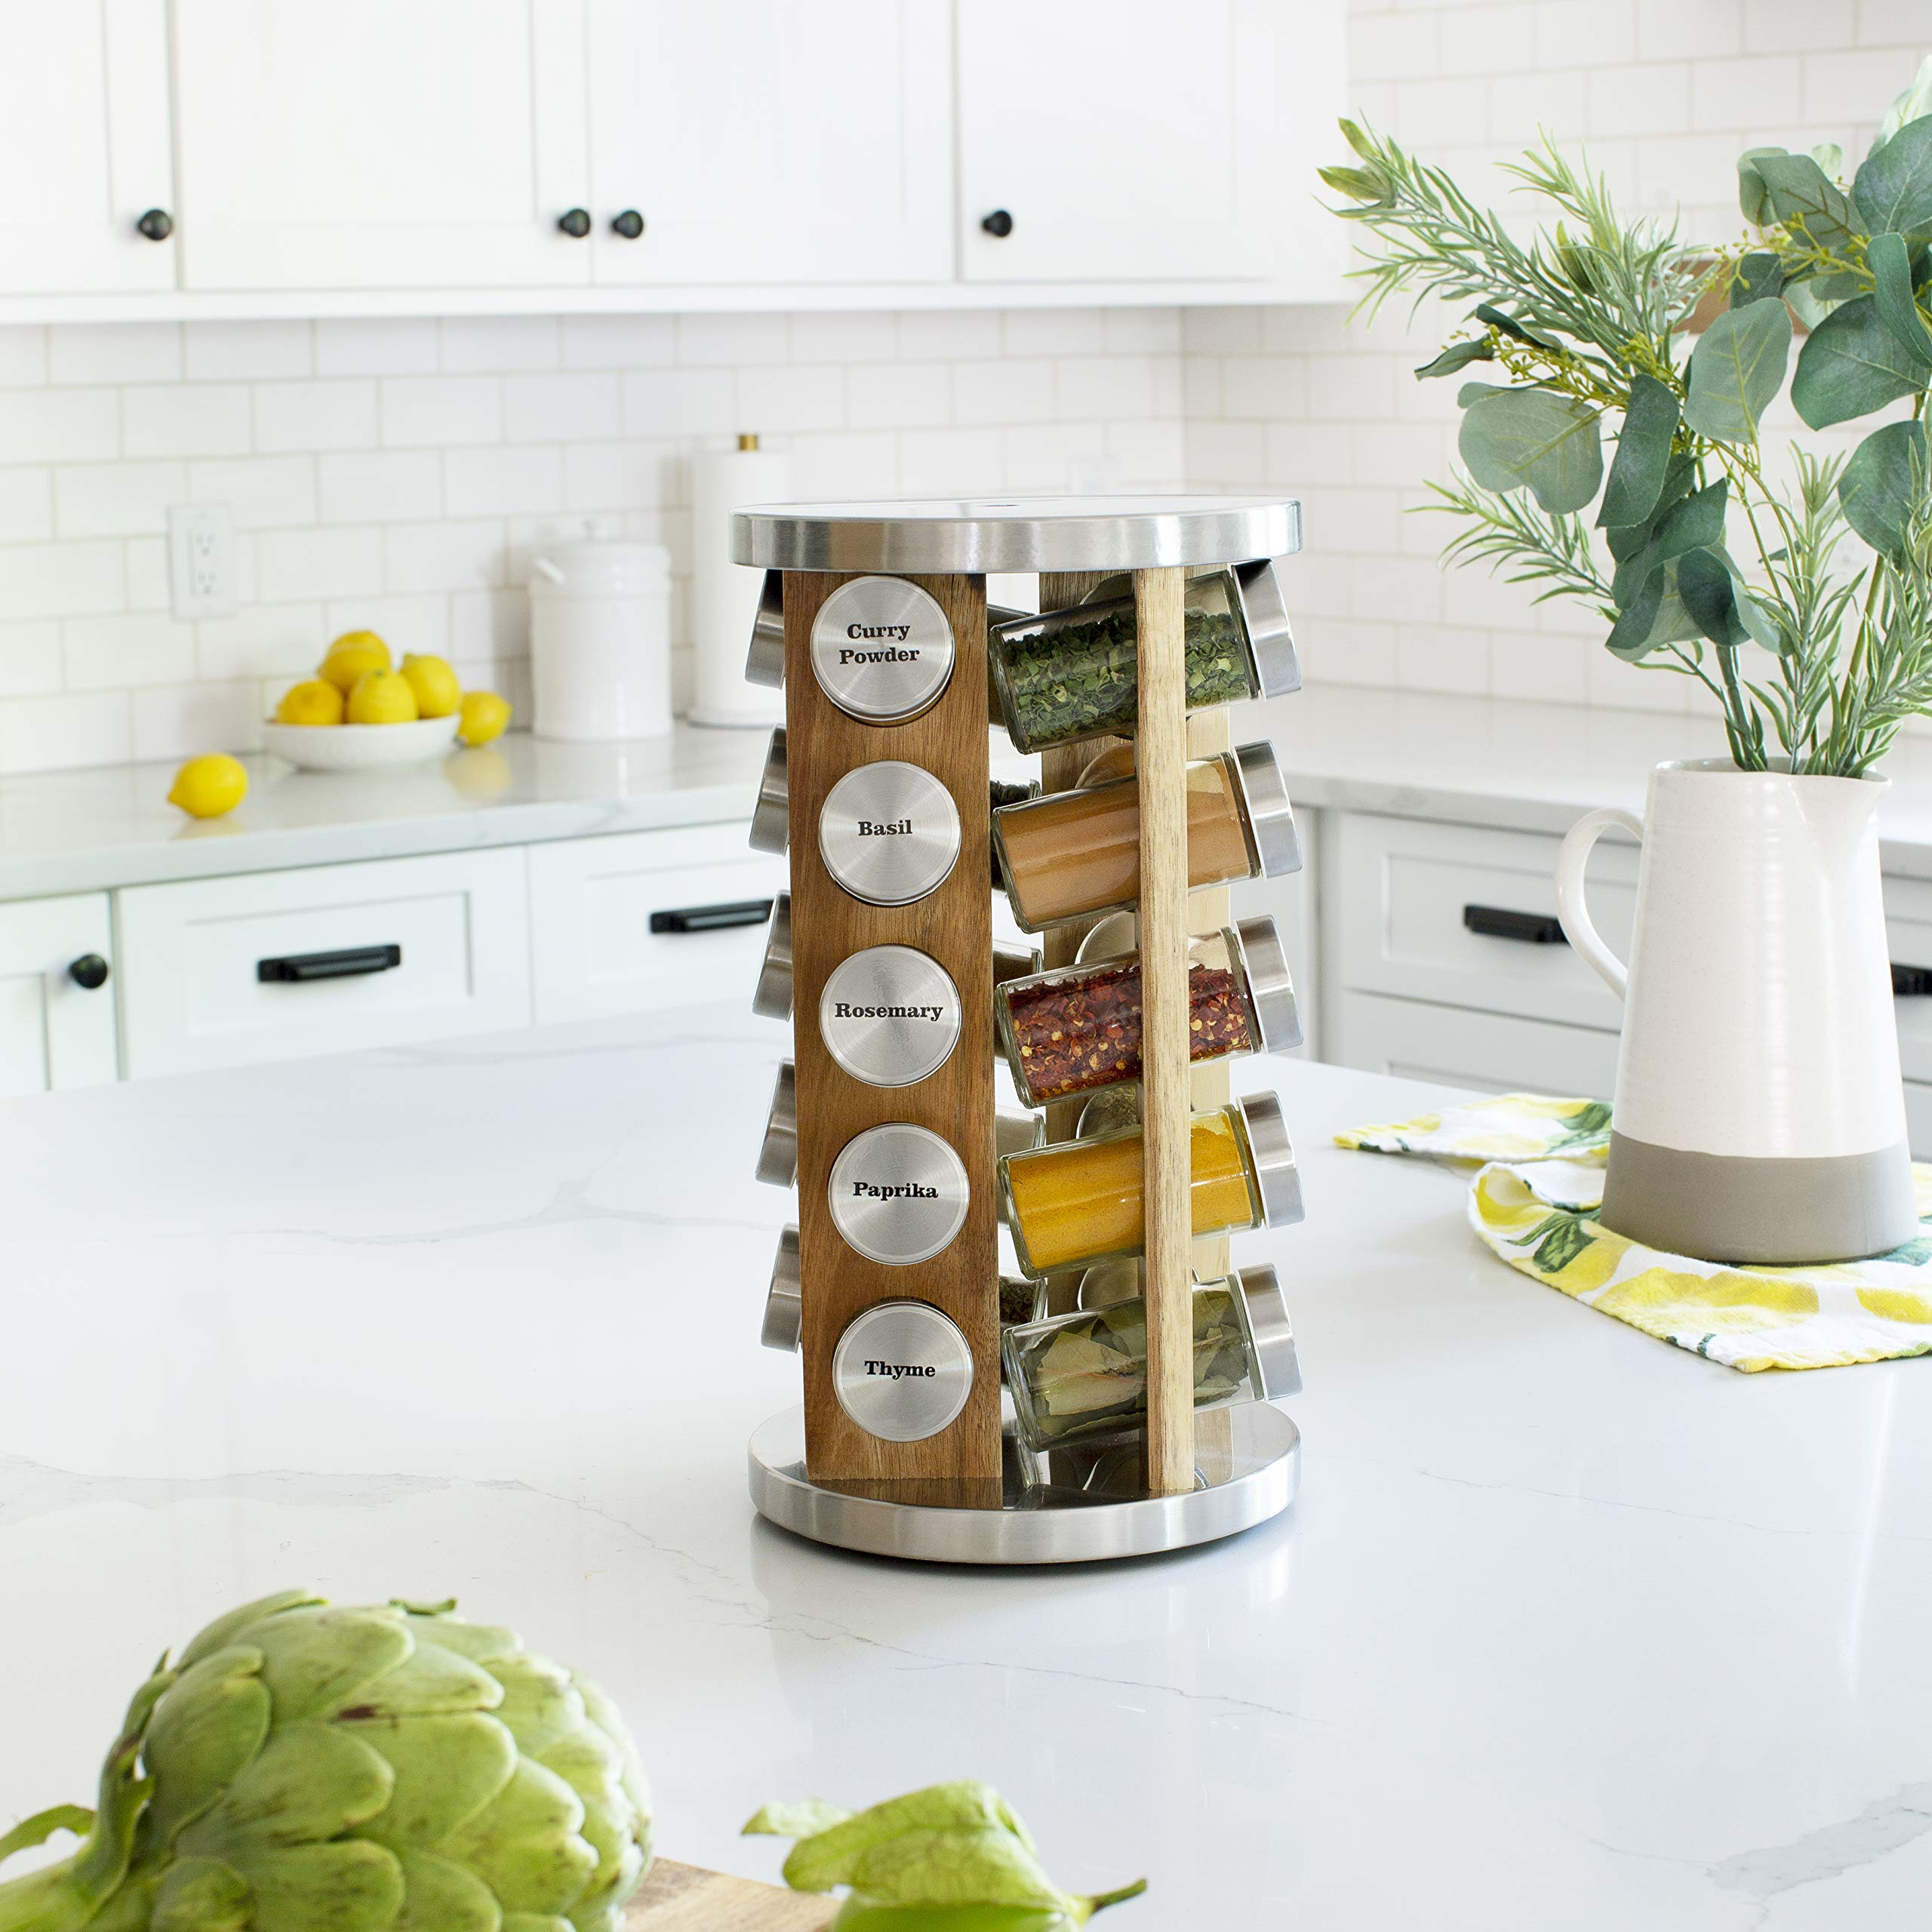 Orii GSR3519-L Rotating Spice Rack, Light natural wood by Orii